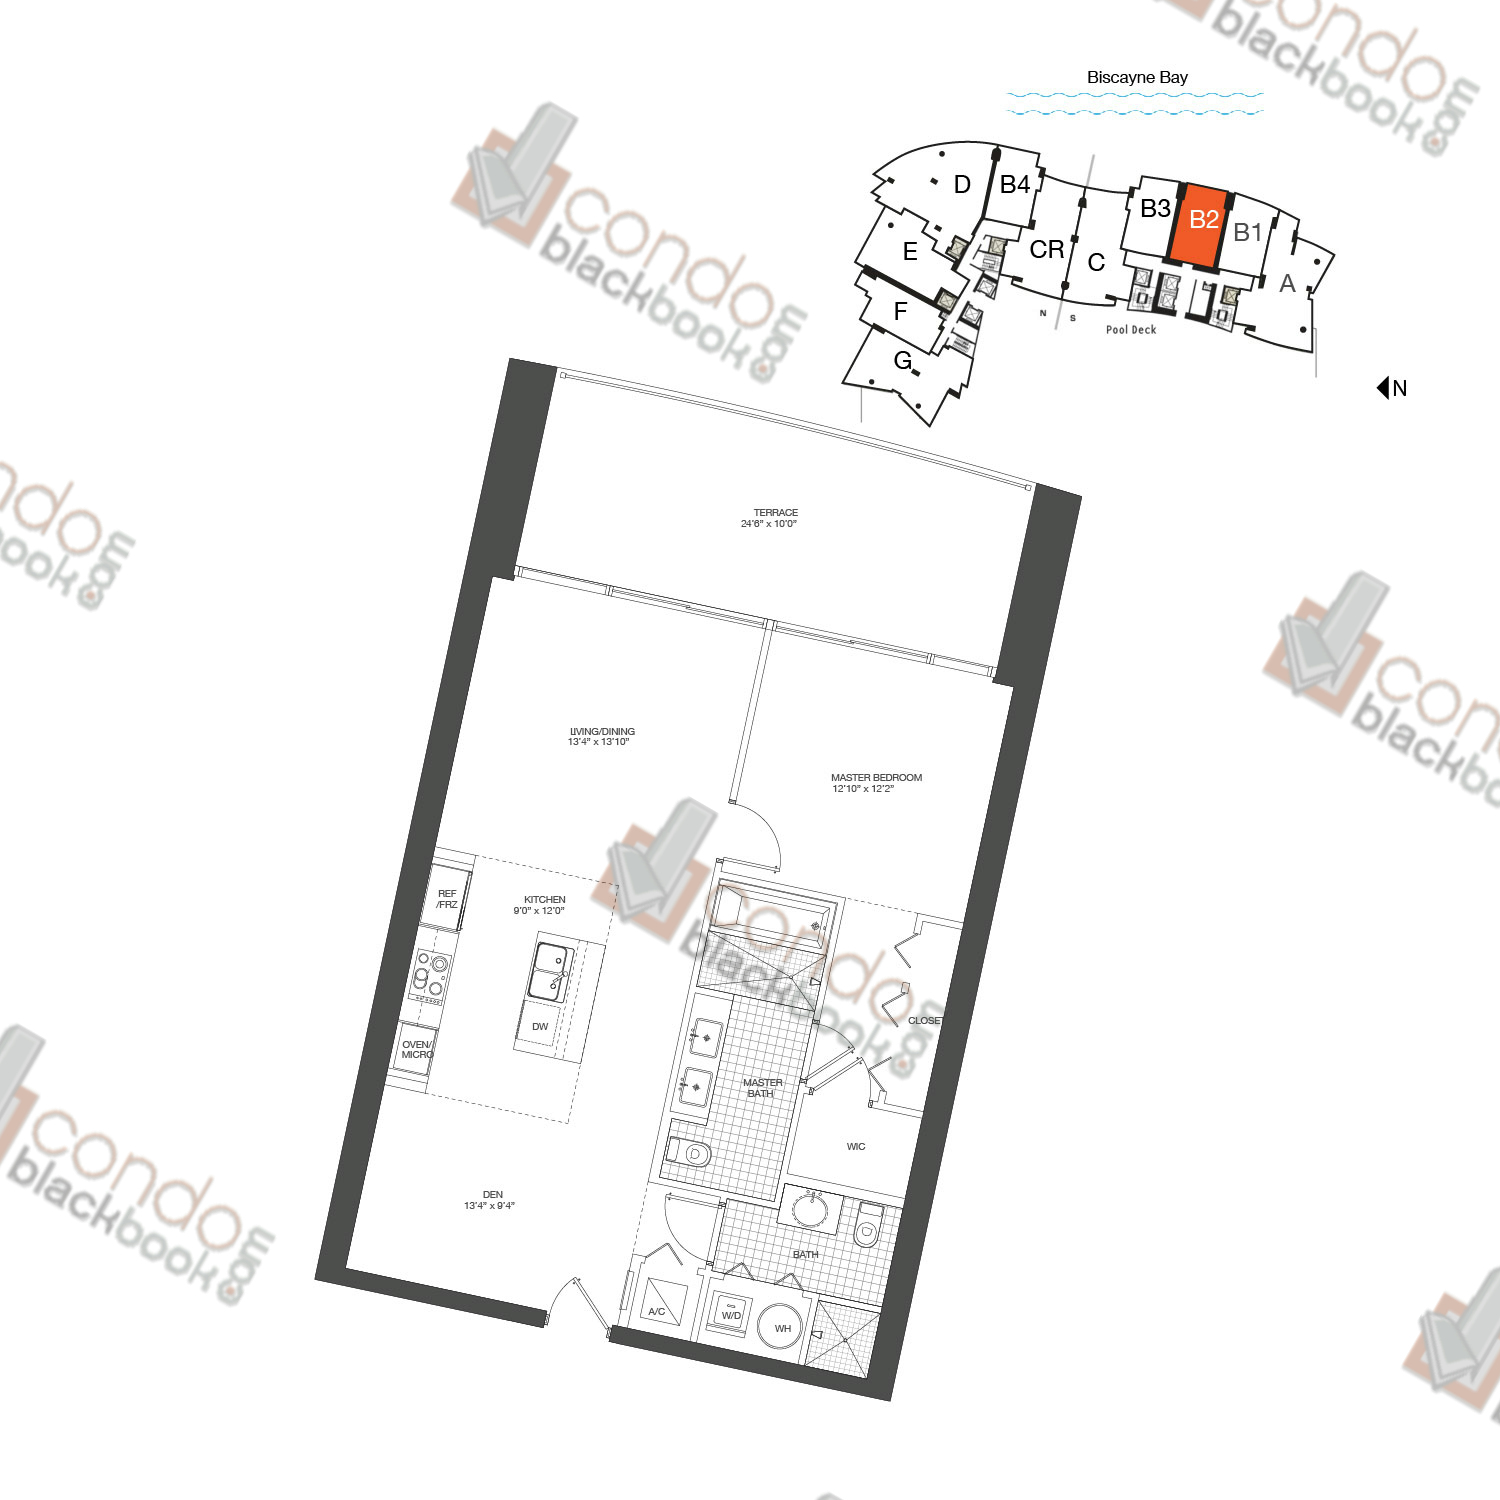 Floor plan for 900 Biscayne Bay Downtown Miami Miami, model Unit B2, line 05, 1/2+DEN bedrooms, 929 sq ft